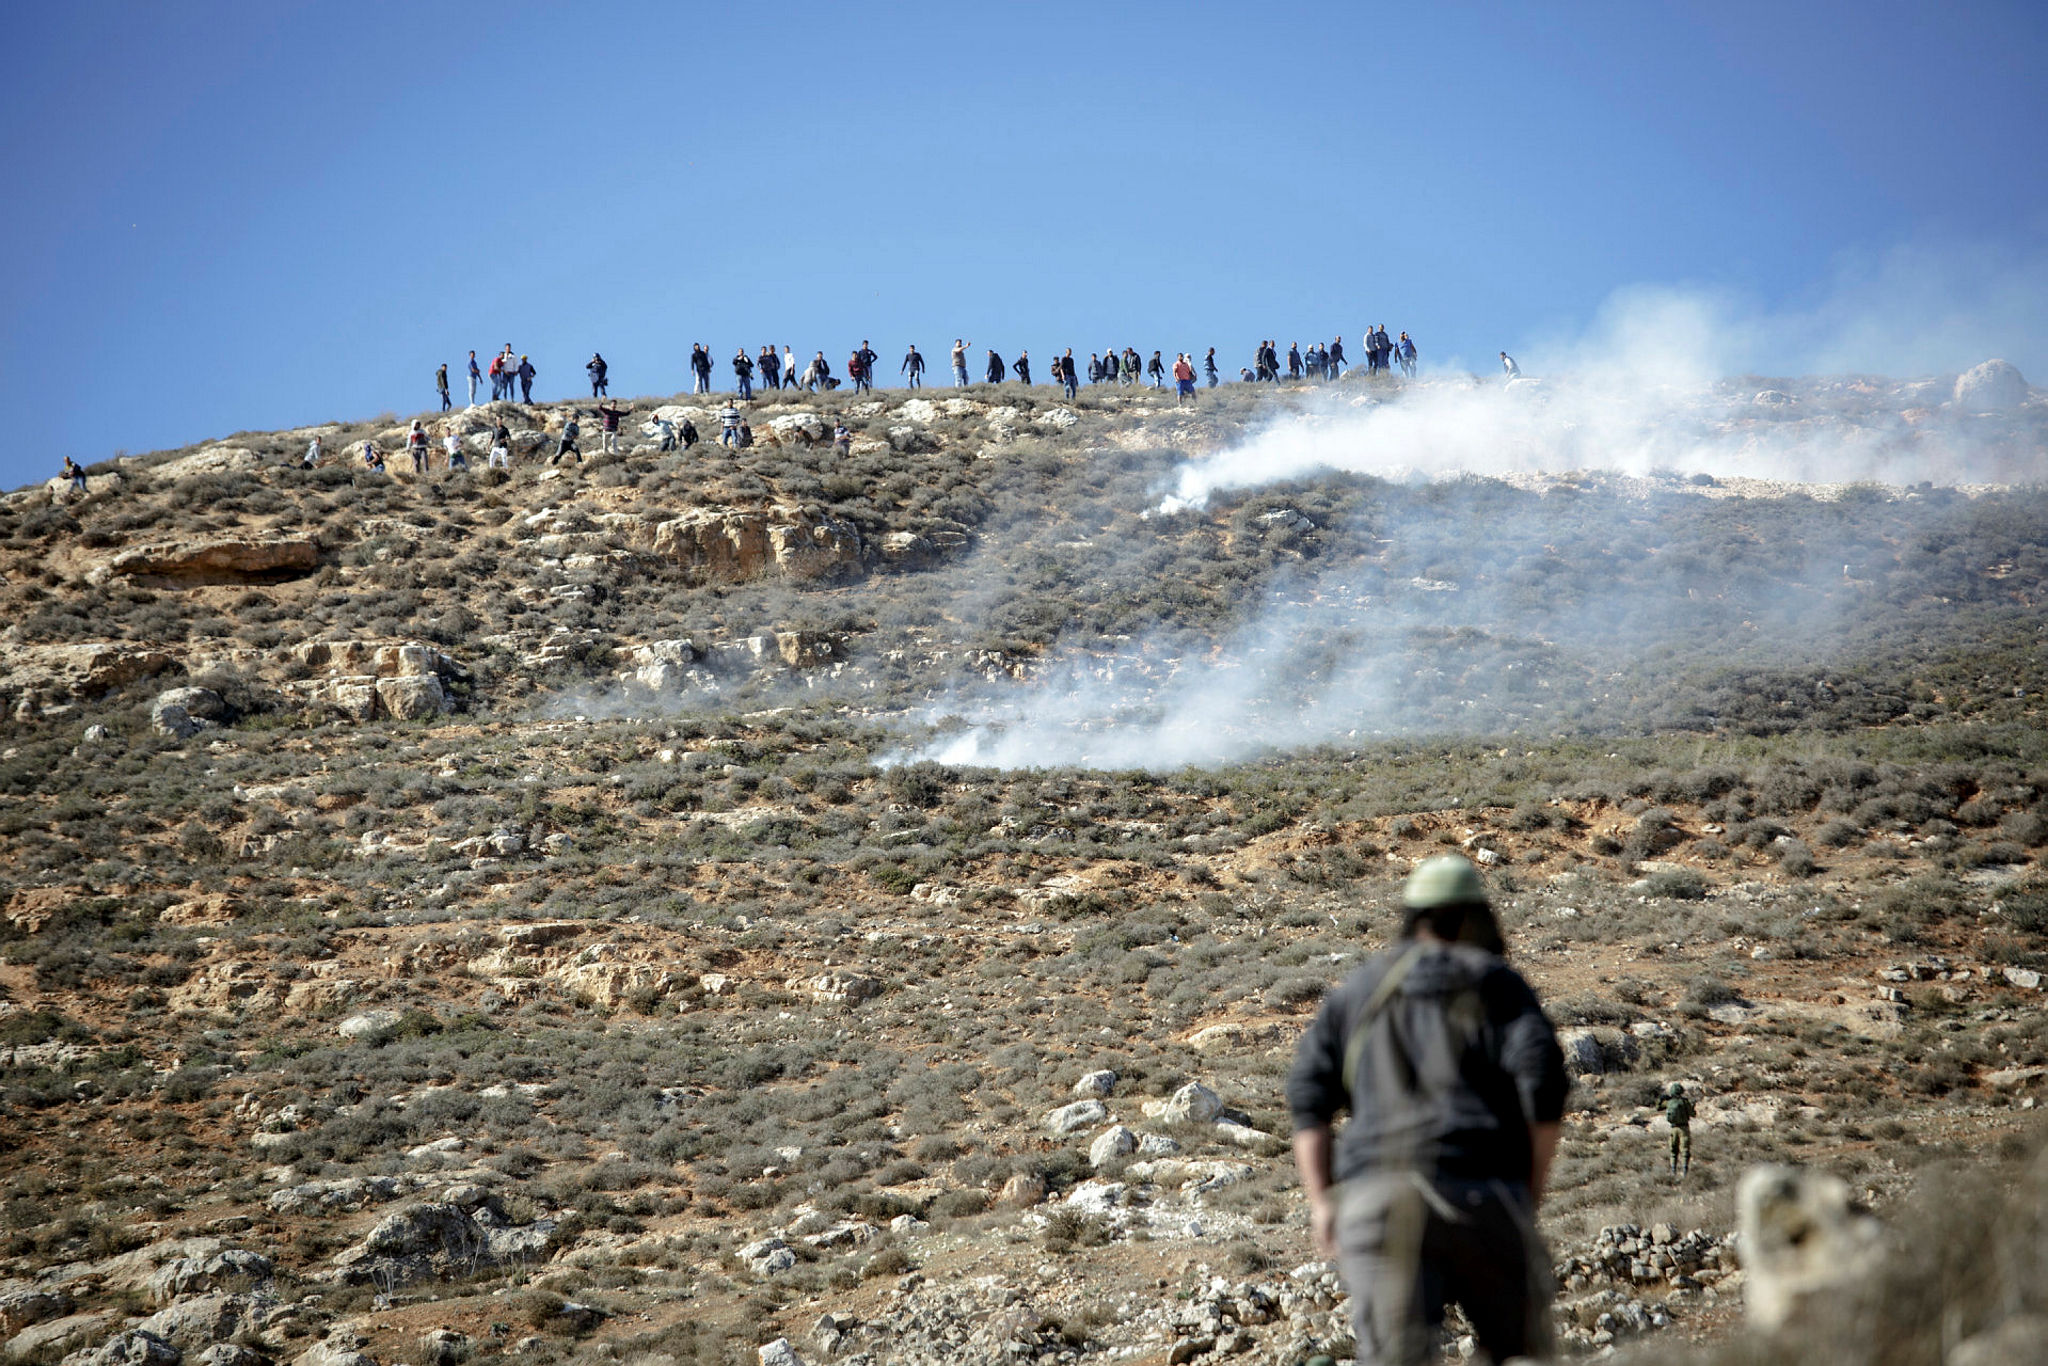 Palestinians throw stones at a group in Samaria